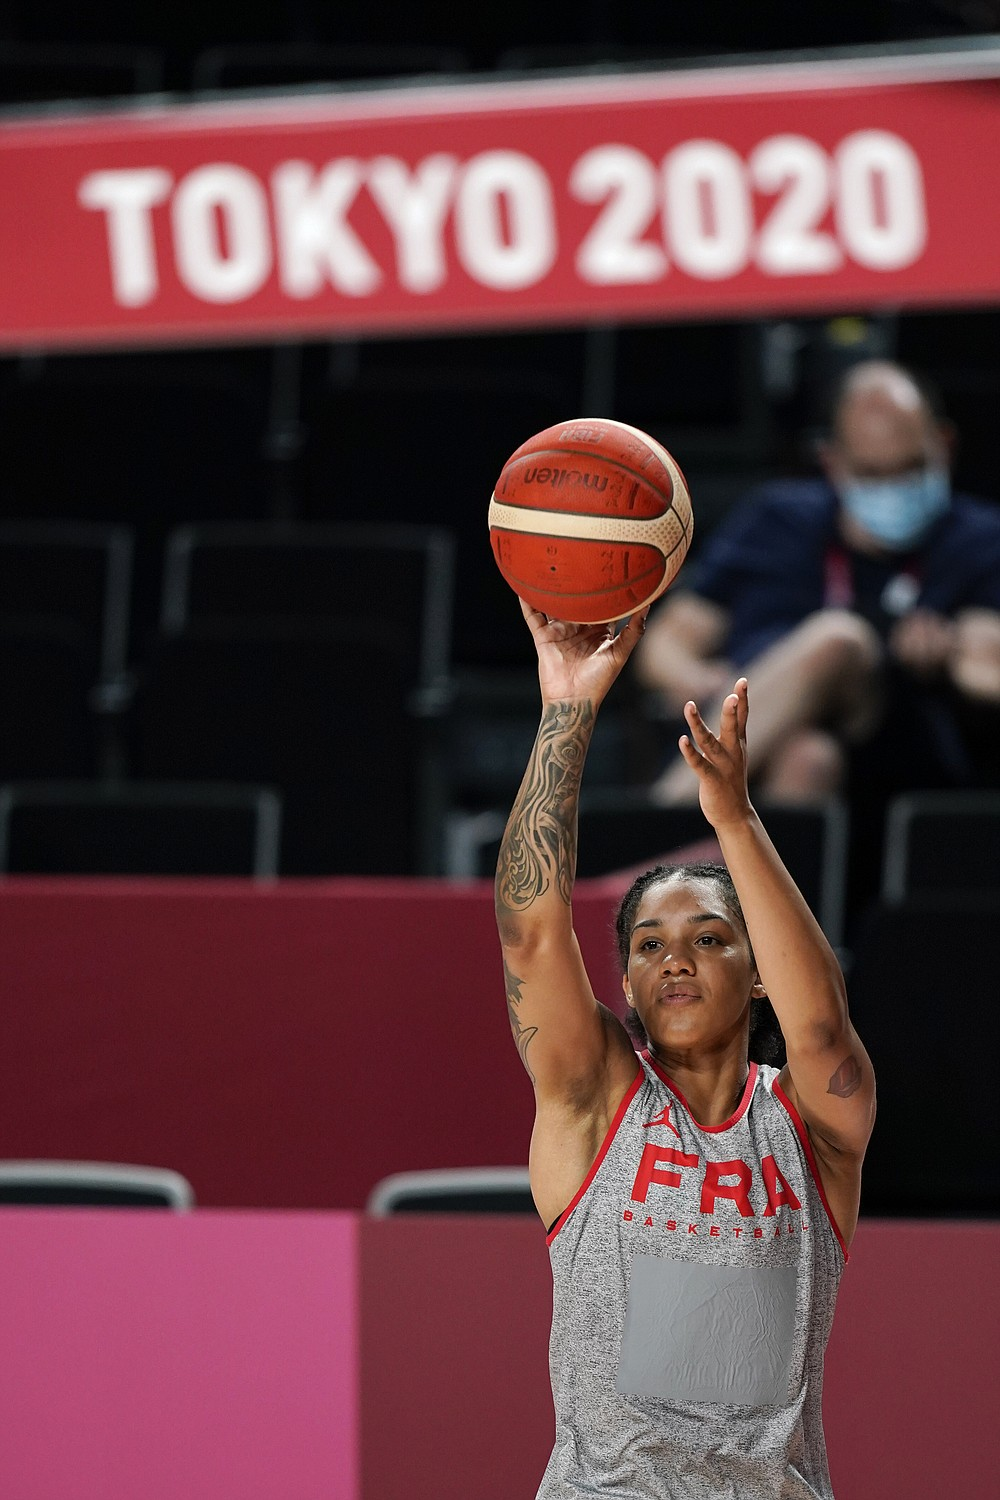 France's Gabby Williams shoots during a women's basketball practice at the 2020 Summer Olympics, Saturday, July 24, 2021, in Saitama, Japan. (AP Photo/Charlie Neibergall)